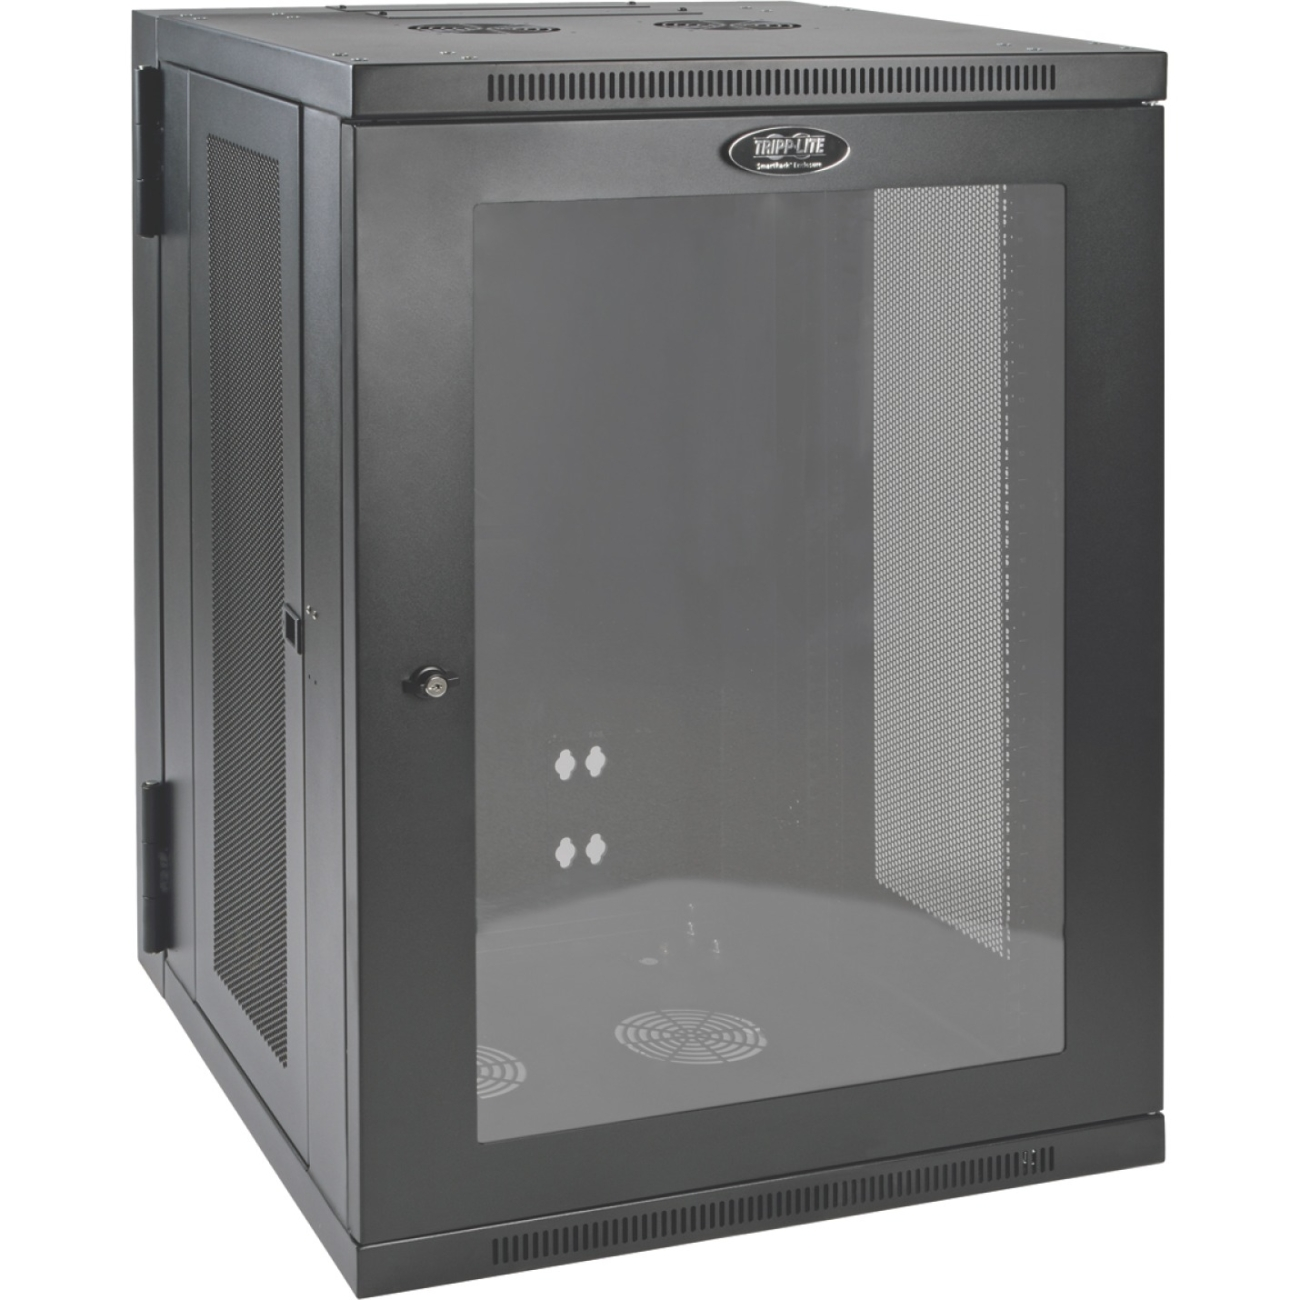 "Tripp Lite 18u Wall Mount Rack Enclosure Server Cabinet W Hinged Acrylic Window - 19"" 18u Wide X 10.42"" Deep Wall Mountable For Lan Switch, Patch Panel - Black Powder Coat - Acrylic, Steel (srw18usg)"